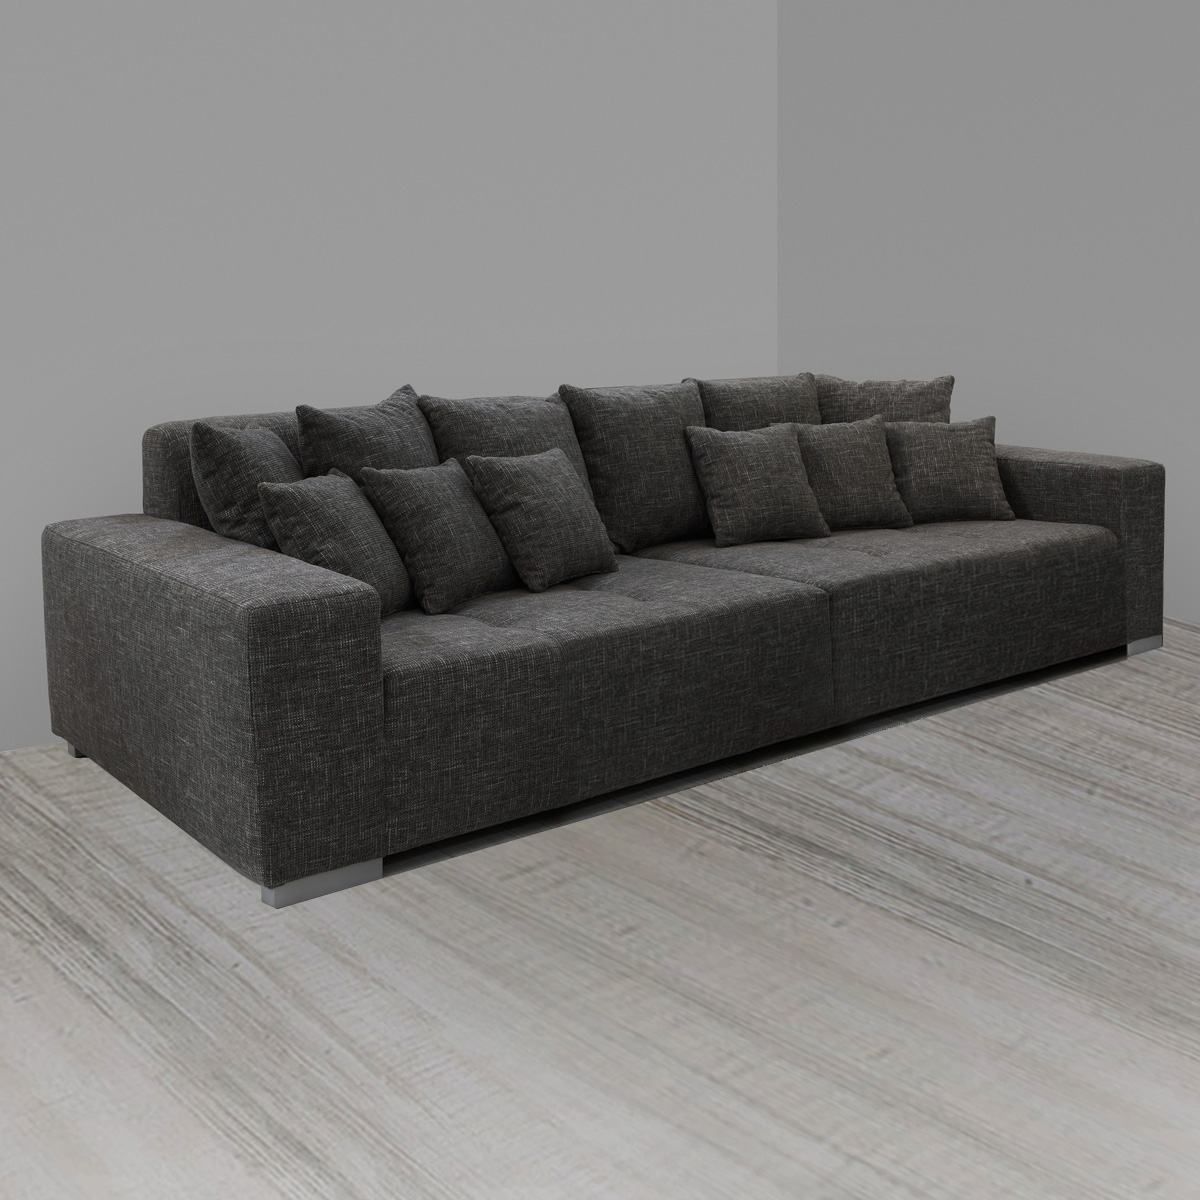 sofa grau stunning boxspring with sofa grau sofa grau leder with sofa grau leder with sofa. Black Bedroom Furniture Sets. Home Design Ideas